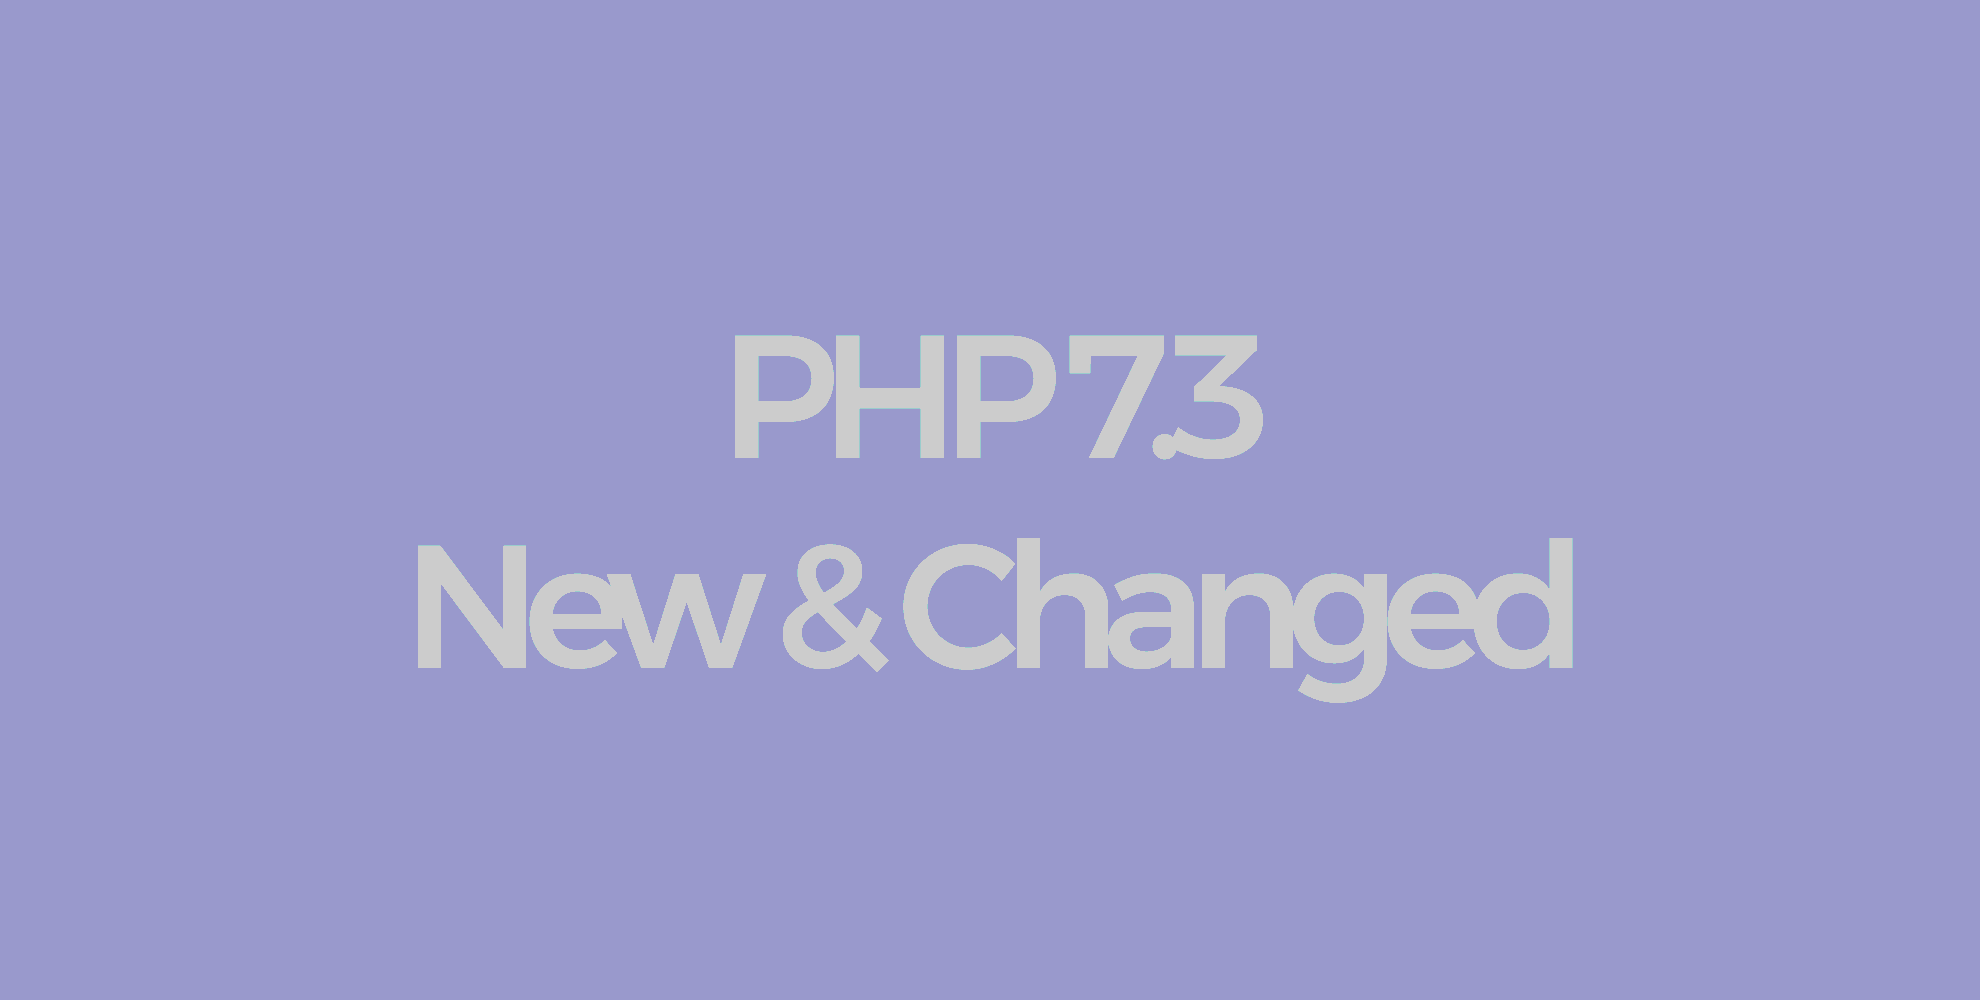 PHP 7.3. What's new